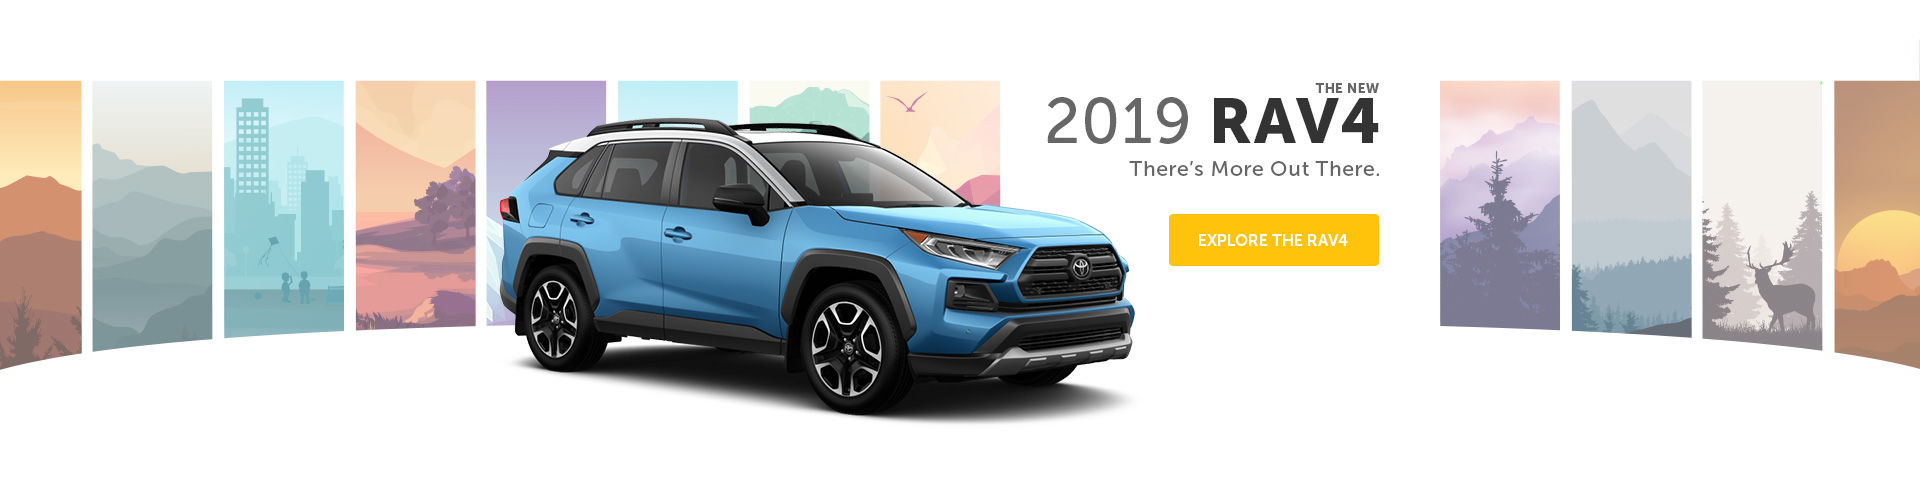 The New 2019 Rav4